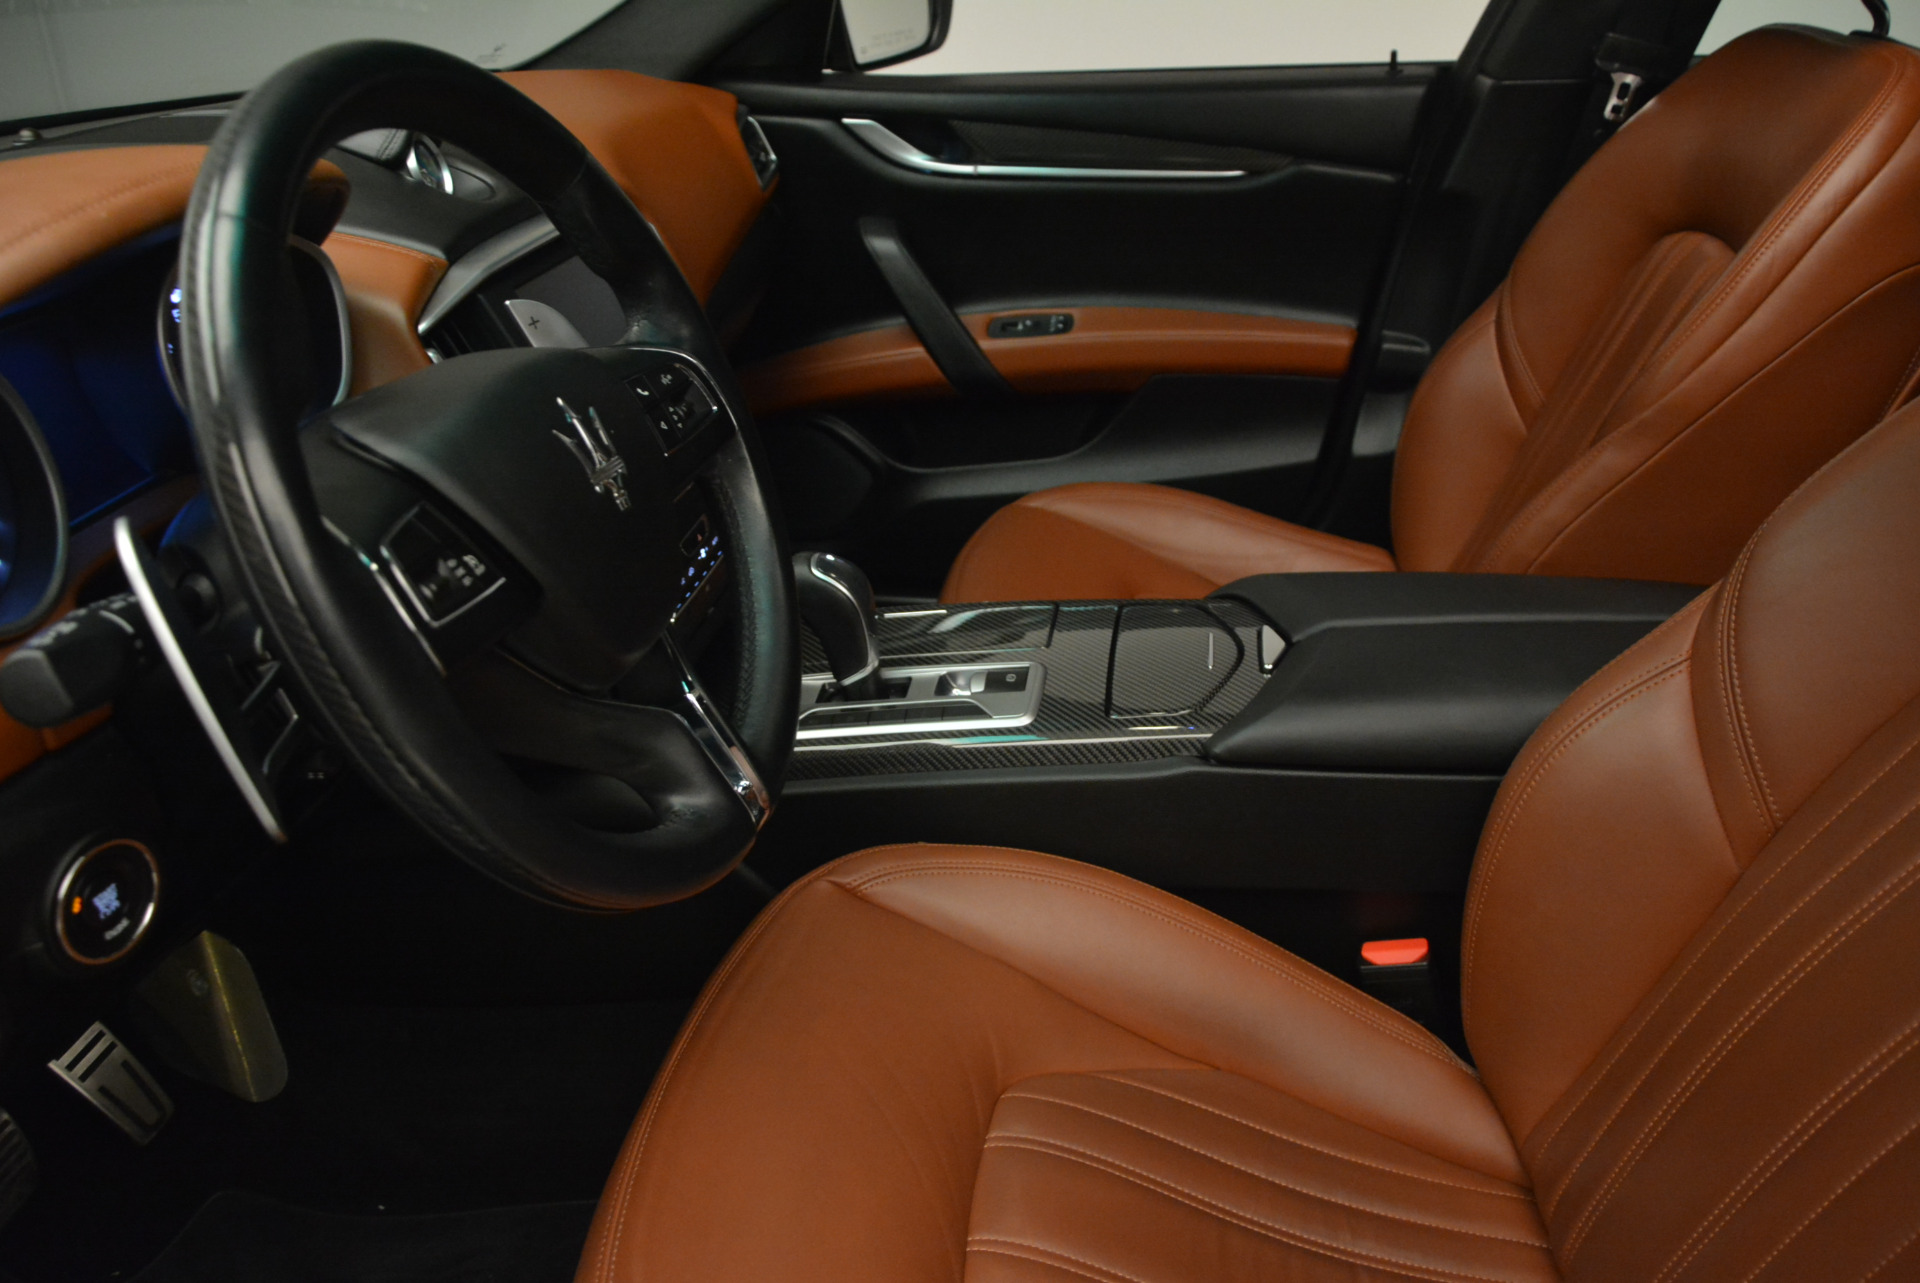 Used 2014 Maserati Ghibli S Q4 For Sale In Westport, CT 805_p14